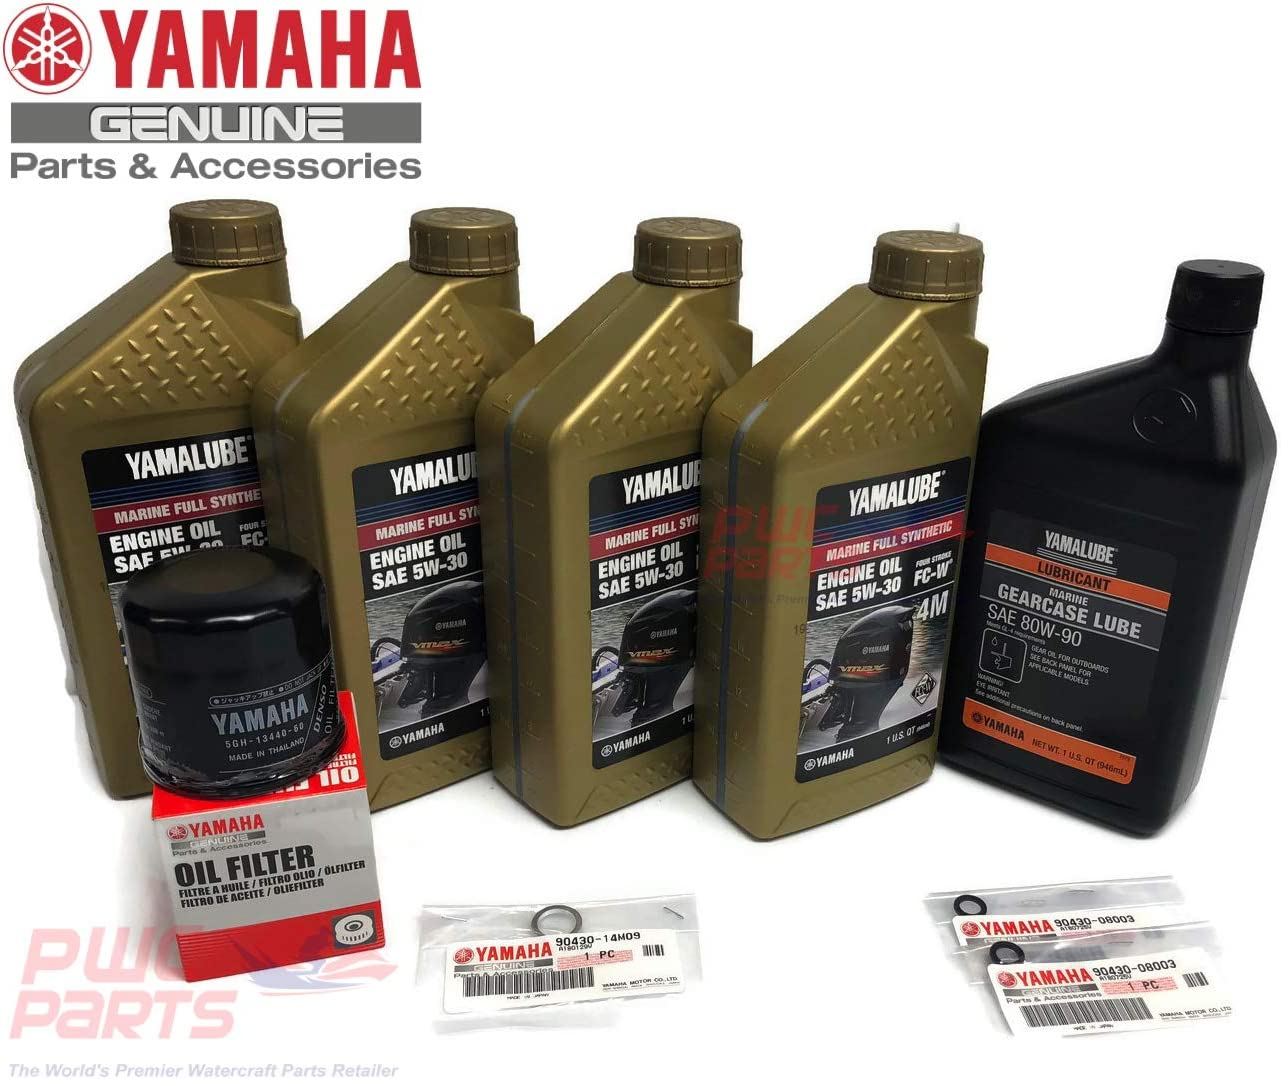 YAMAHA OEM F75 F90 F115 FULL Synthetic Oil Change Filter Lower Unit Gear Lube Kit w/Drain Fill Gaskets 5W-30 4M